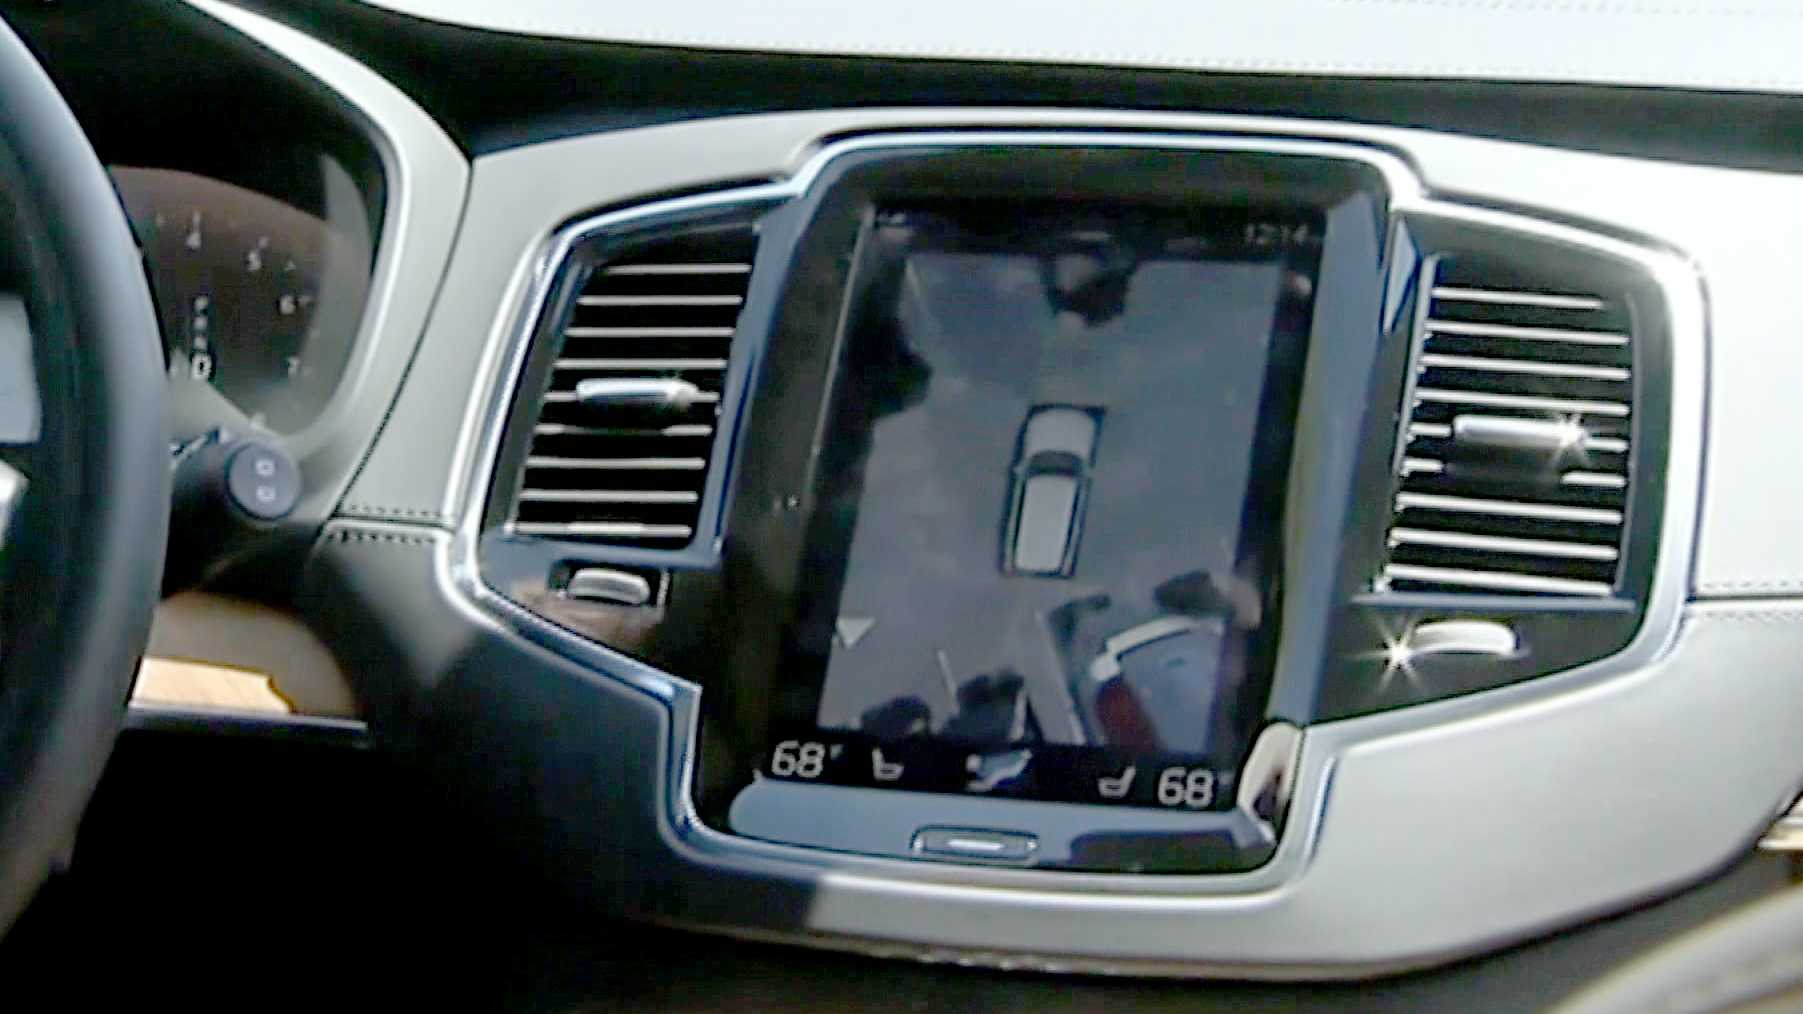 The display screen shows the progress of a self-driving SUV as it parks.